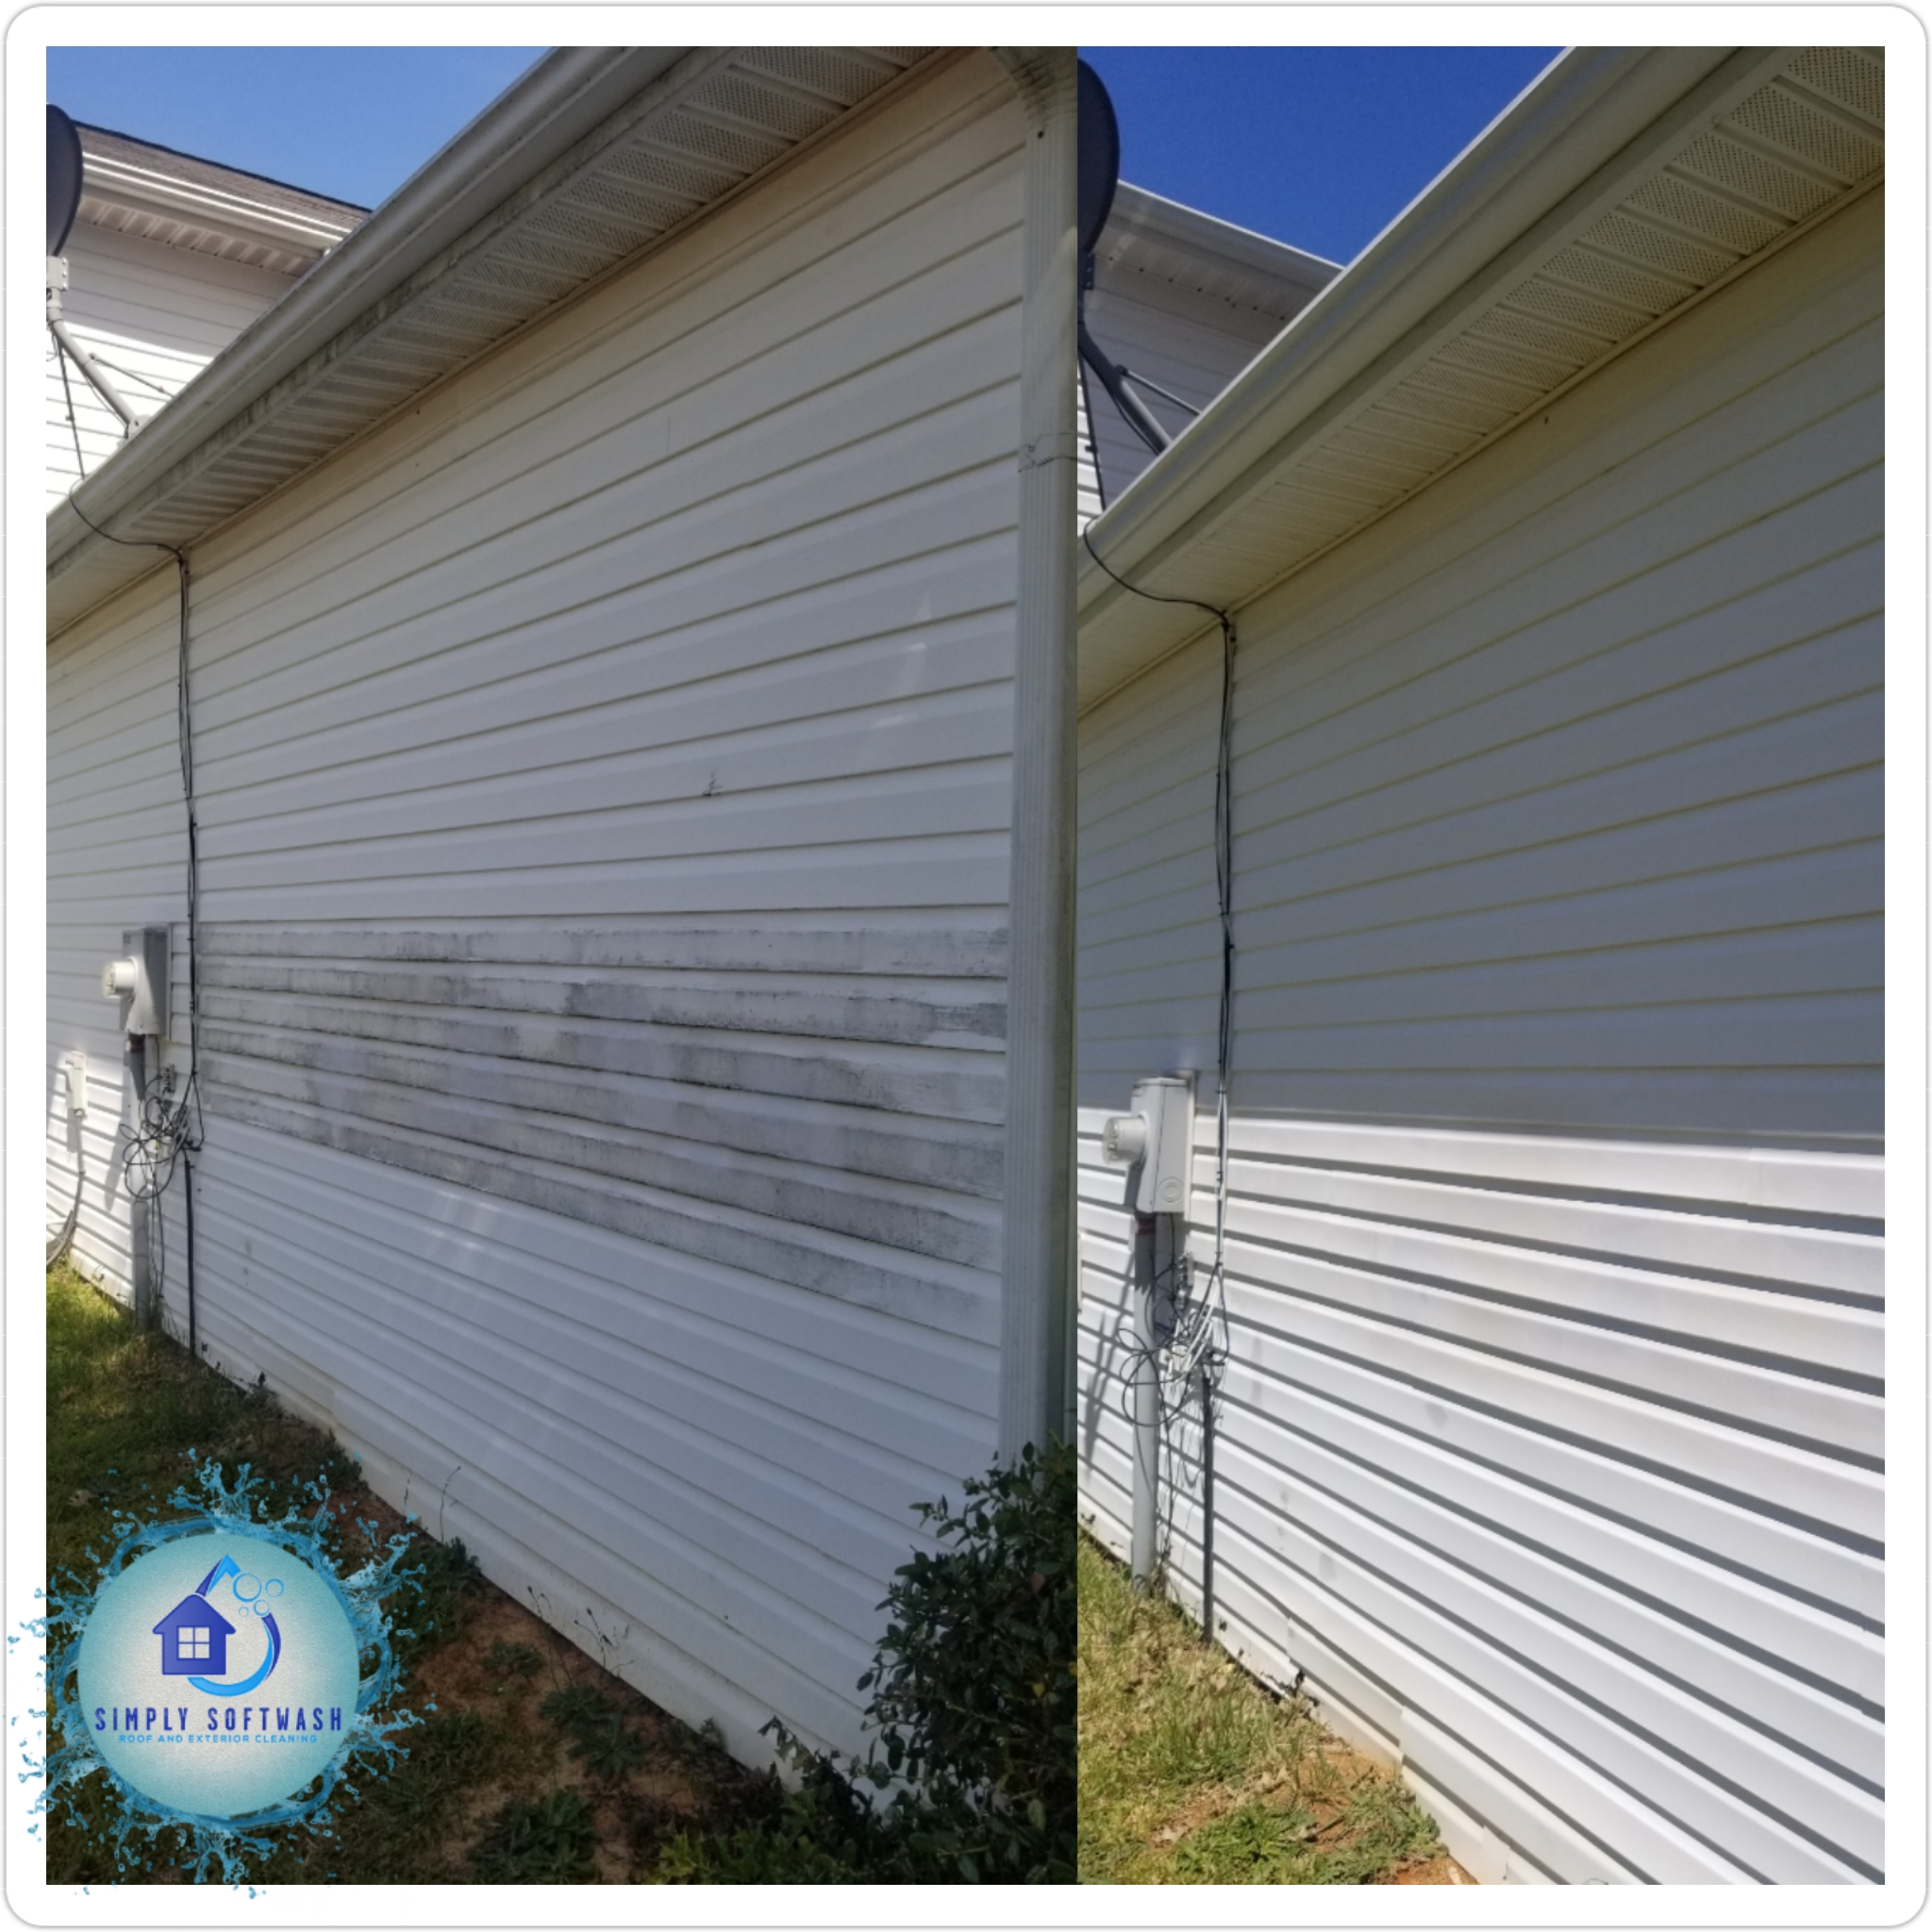 Our residential soft wash house washing service provides homeowners in Lancaster, SC, and the surrounding areas with professional soft washing solutions that won't break the bank. The team here at Simply Softwash Roof and Exterior Cleaning will use a safe and eco-friendly soft washing formula to clean the exteriors of your home, including walls, siding, and more.